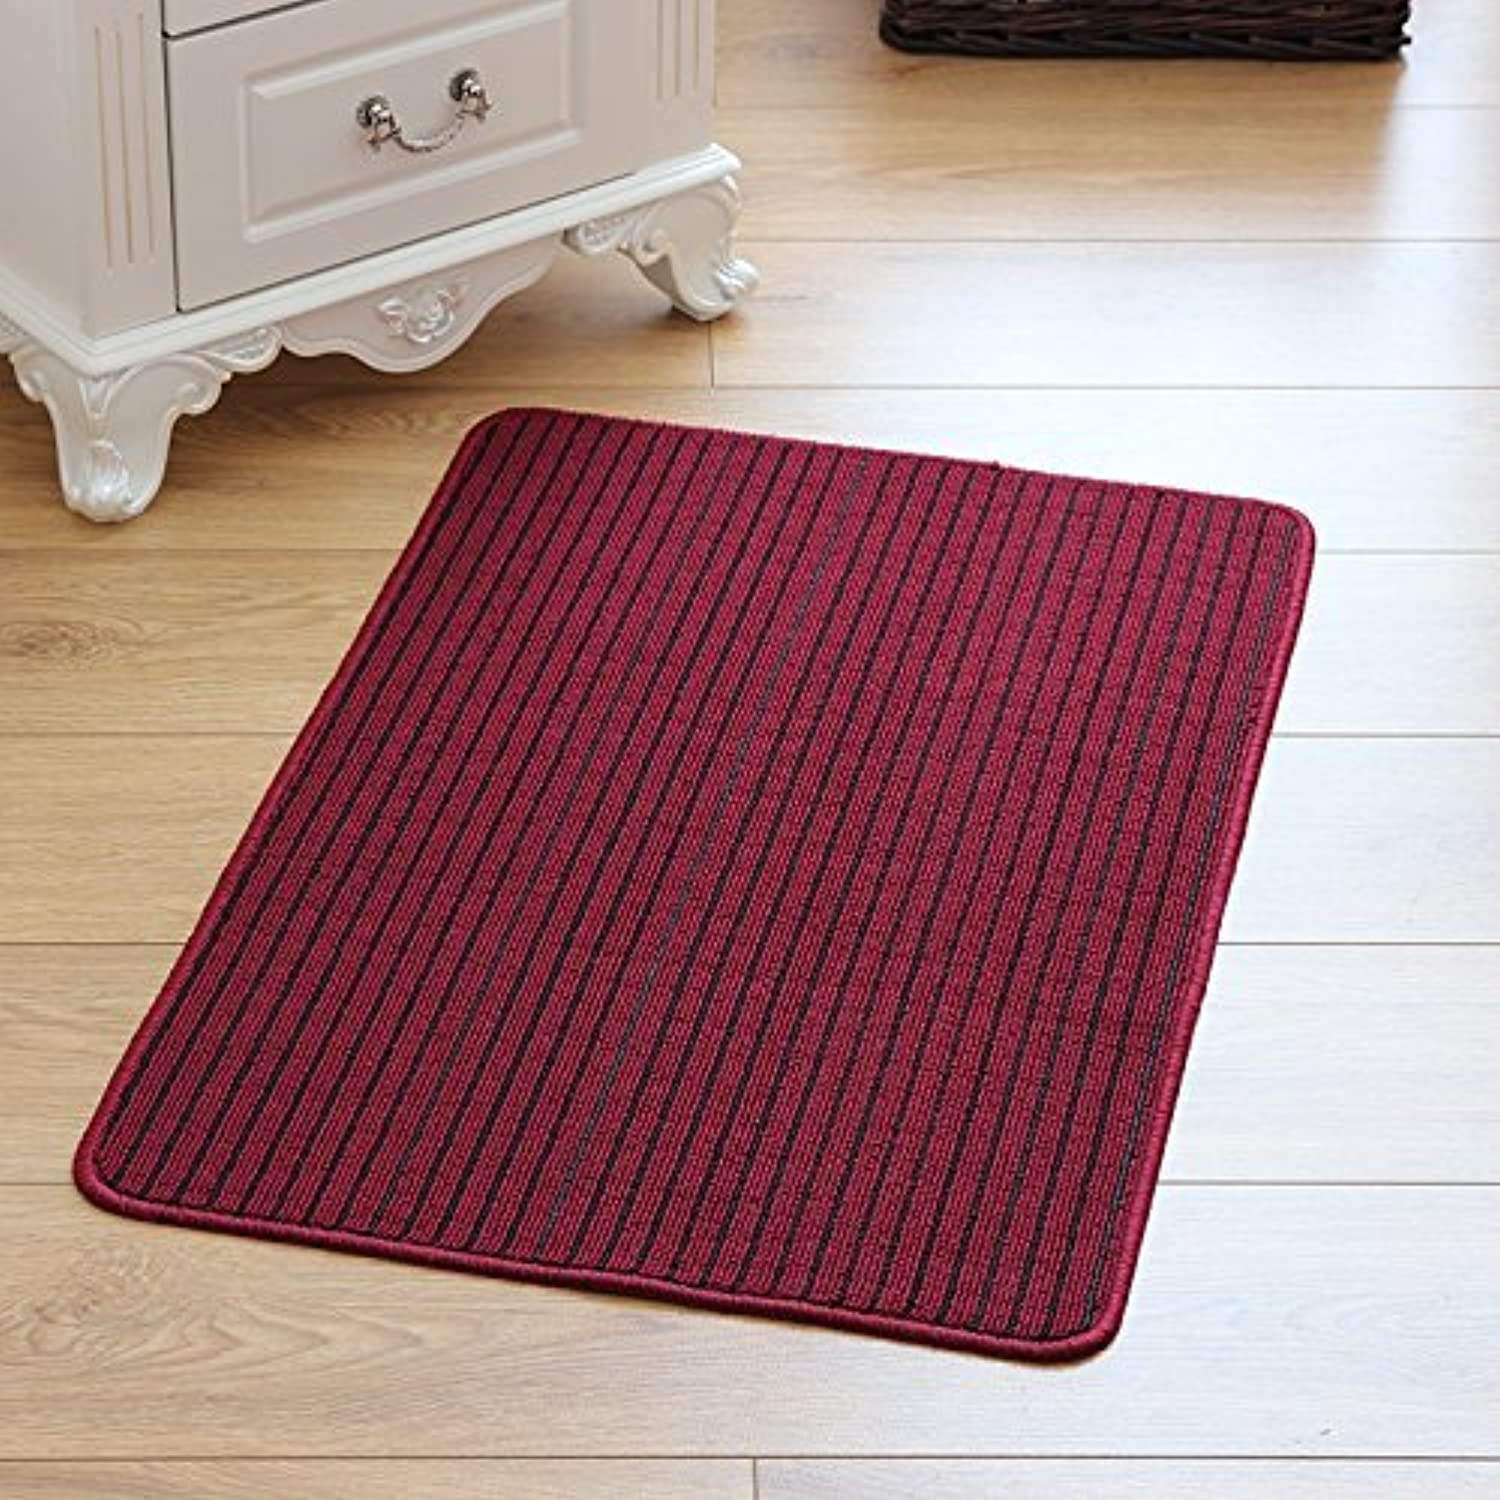 HOMEE Door Mats Entrance Mats Kitchen Non-Slip Feet Pad